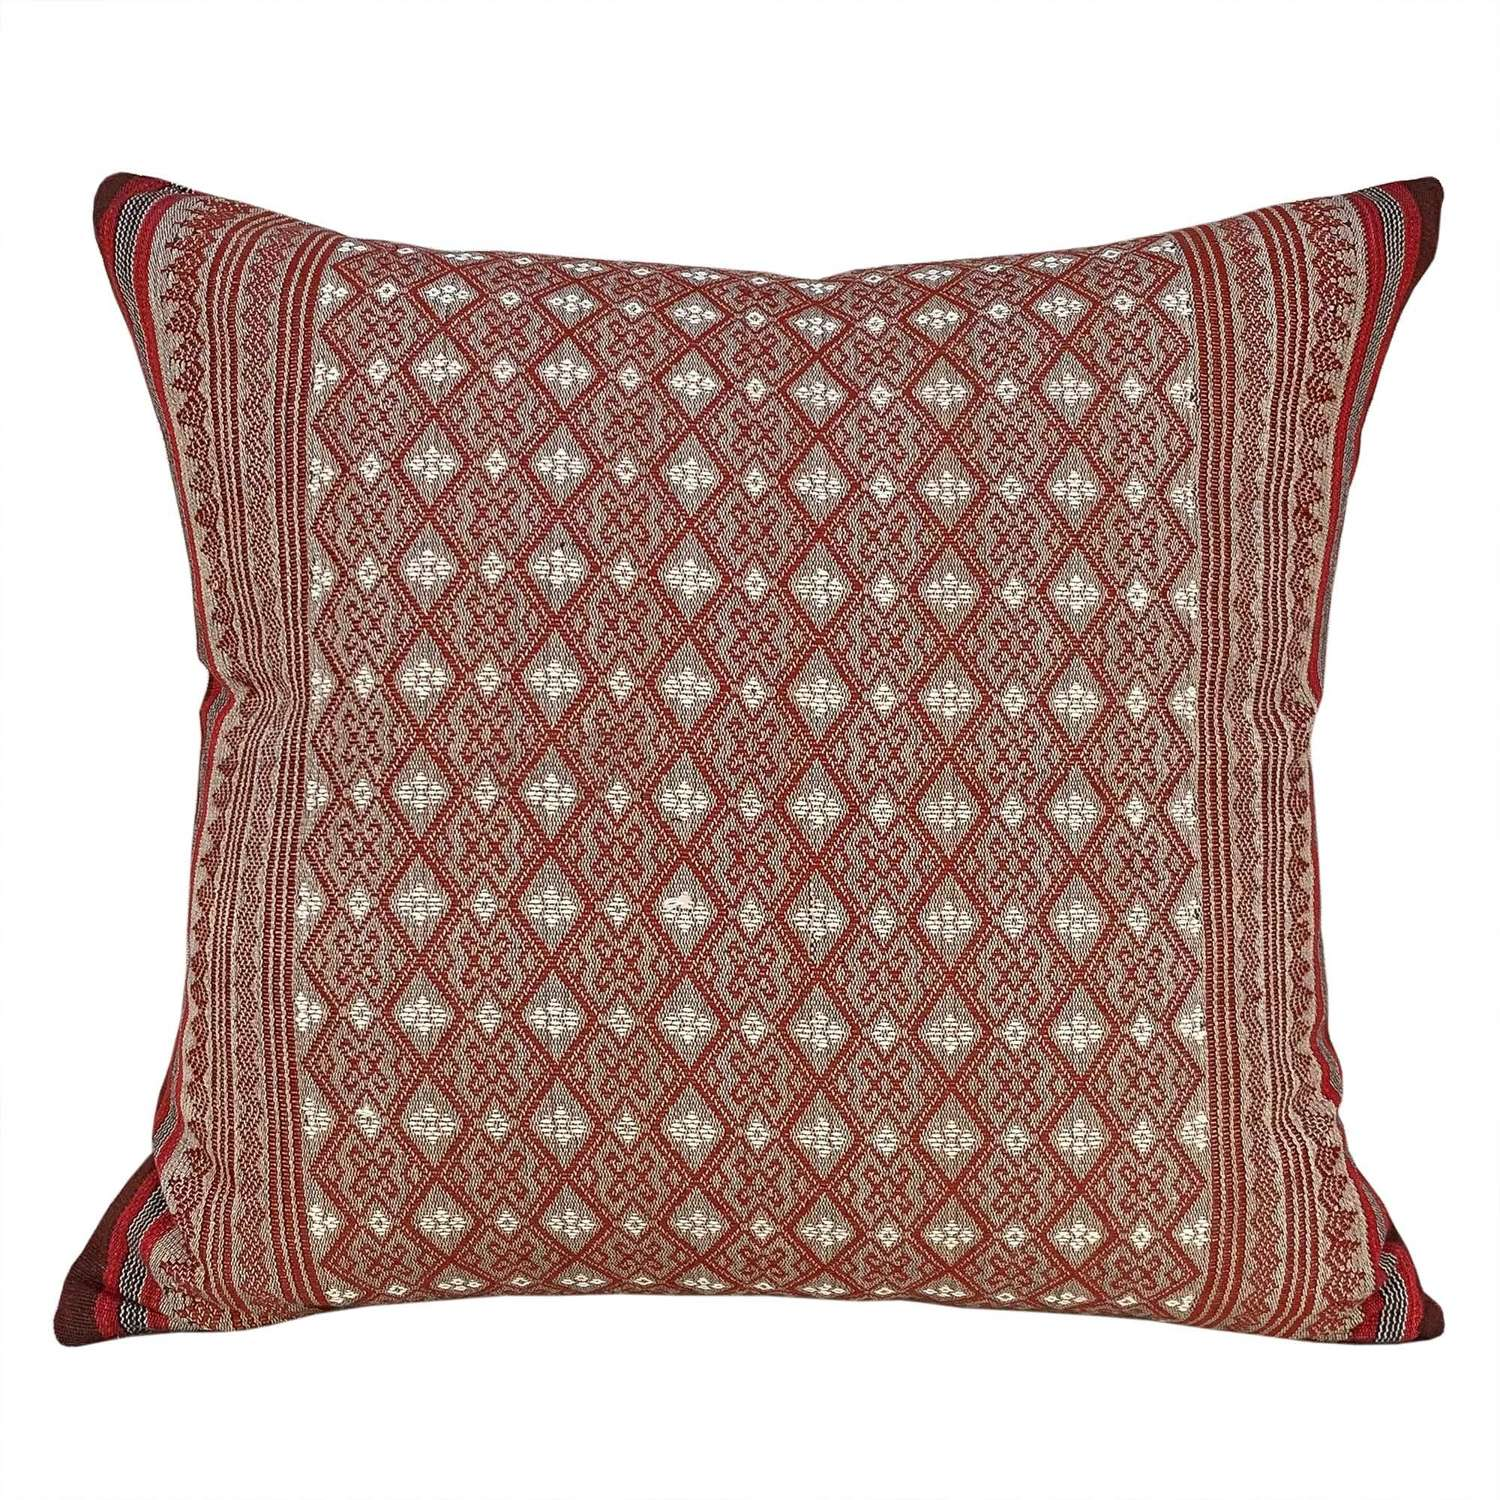 Handwoven Naga cotton cushions